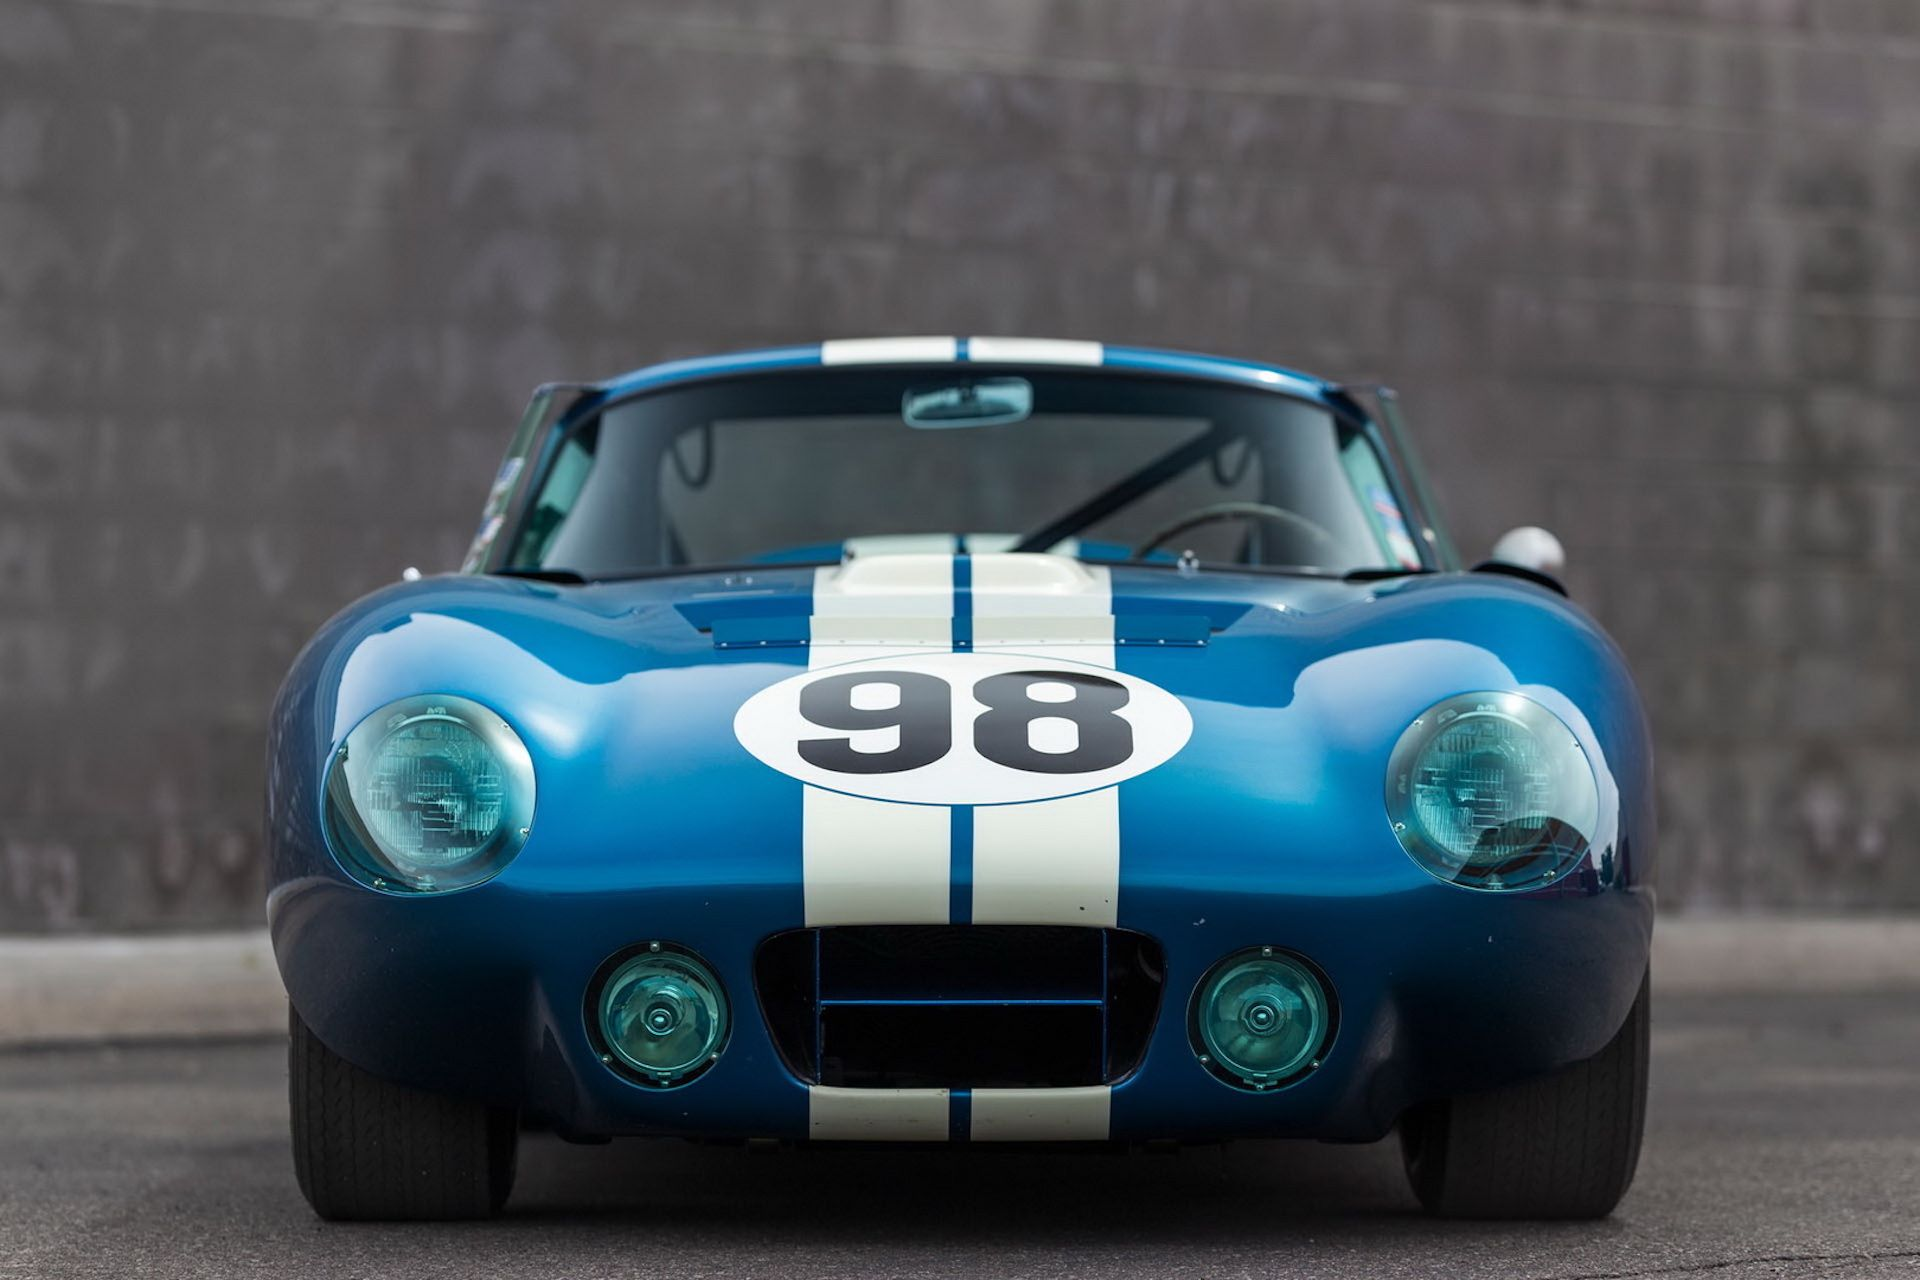 Daytona-Cobra-Carroll-Shelby-auction-AC-Cobra-4